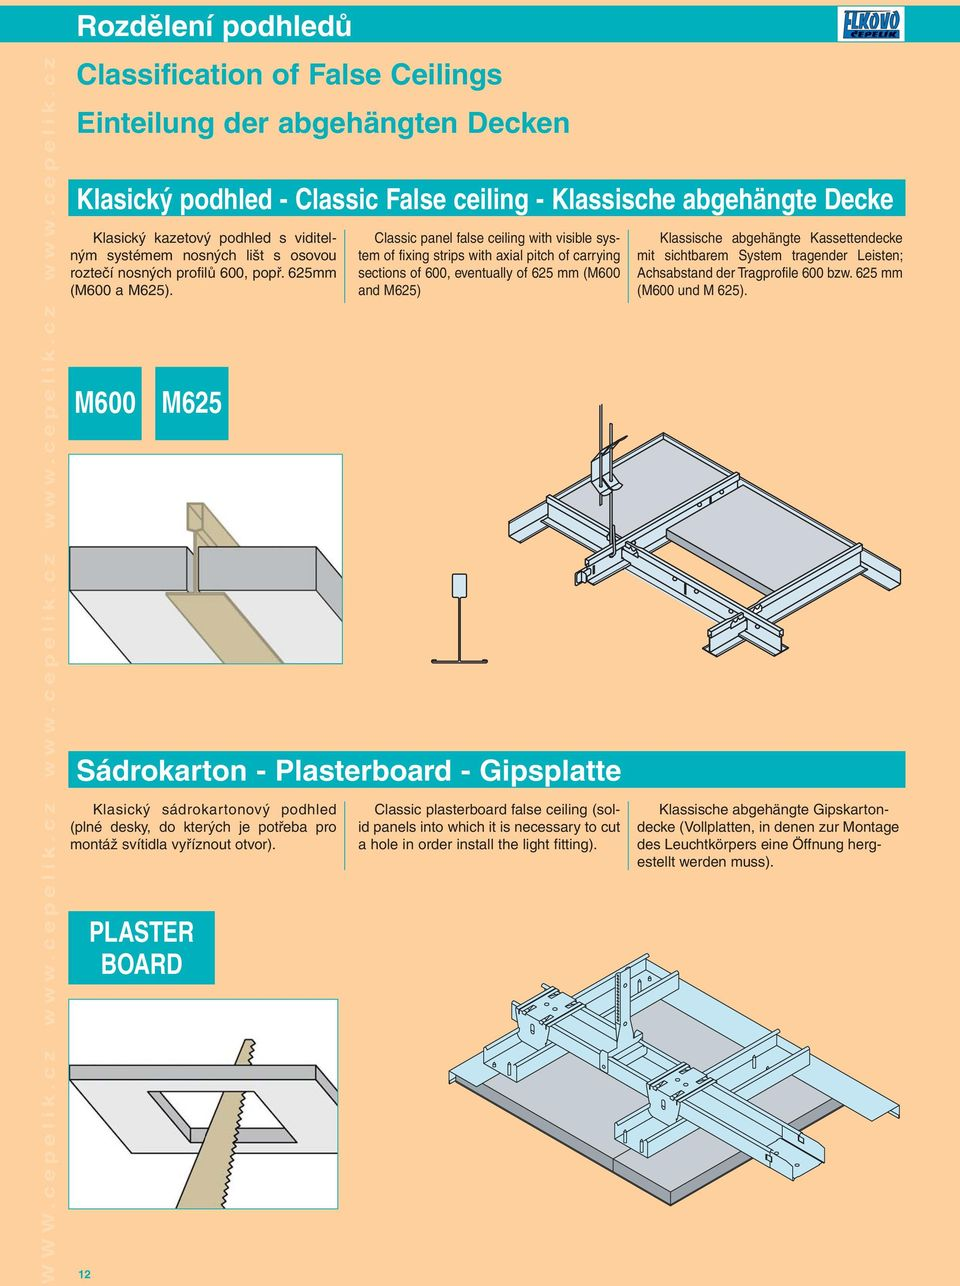 cz Rozdělení podhledů Classification of False Ceilings Einteilung der abgehängten Decken Klasický podhled - Classic False ceiling - Klassische abgehängte Decke Klasický kazetový podhled s viditelným